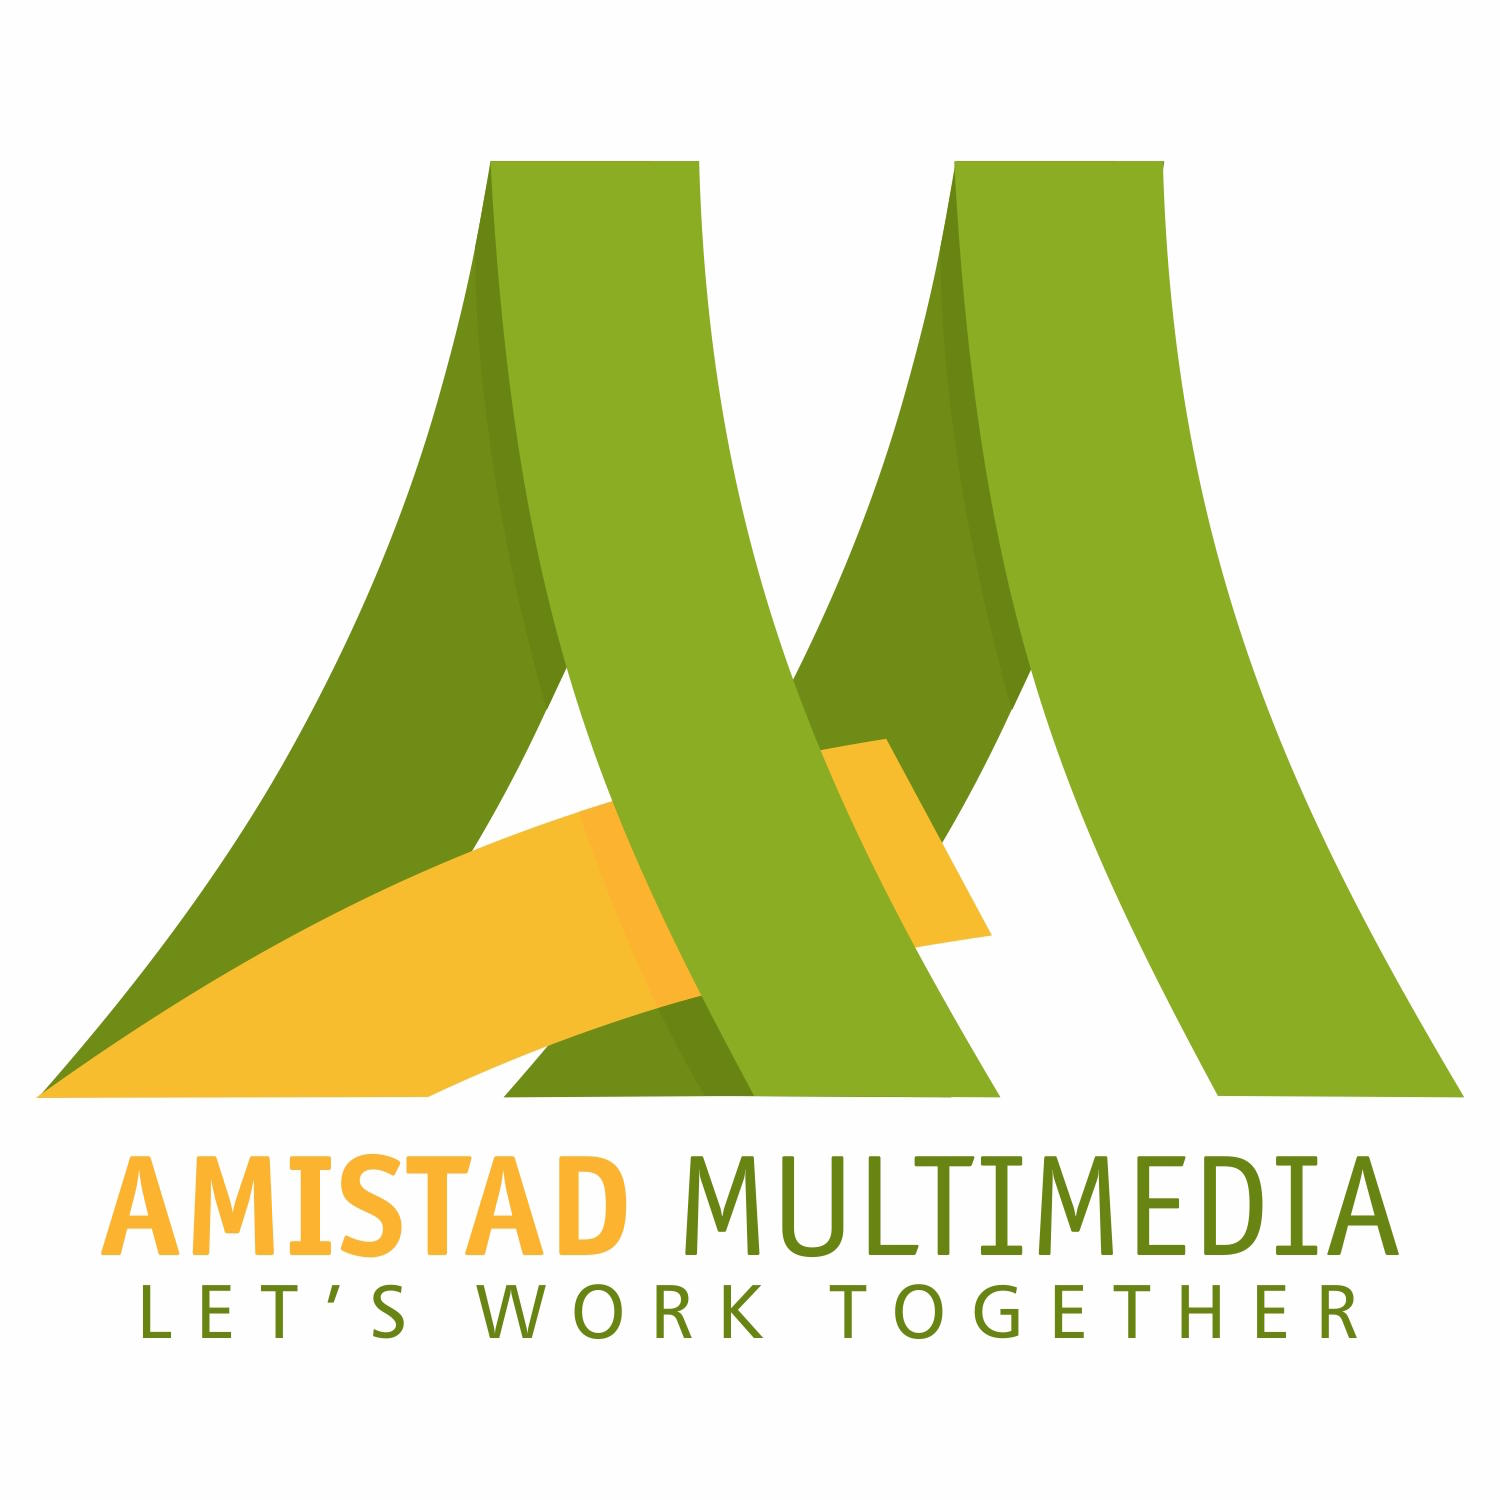 Amistad Multimedia